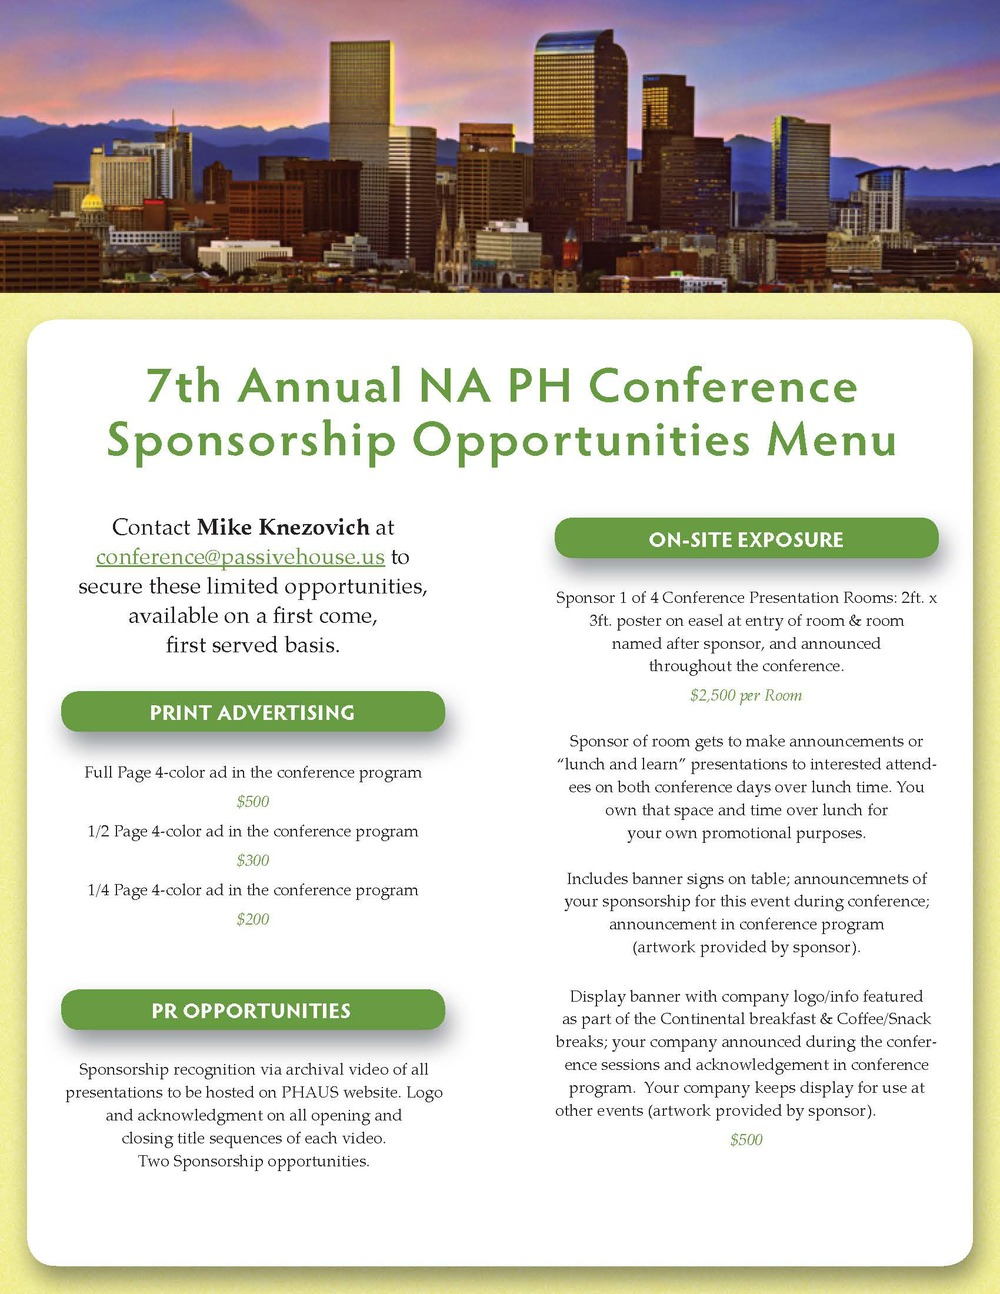 Sponsorship Opportunities Menu.jpg